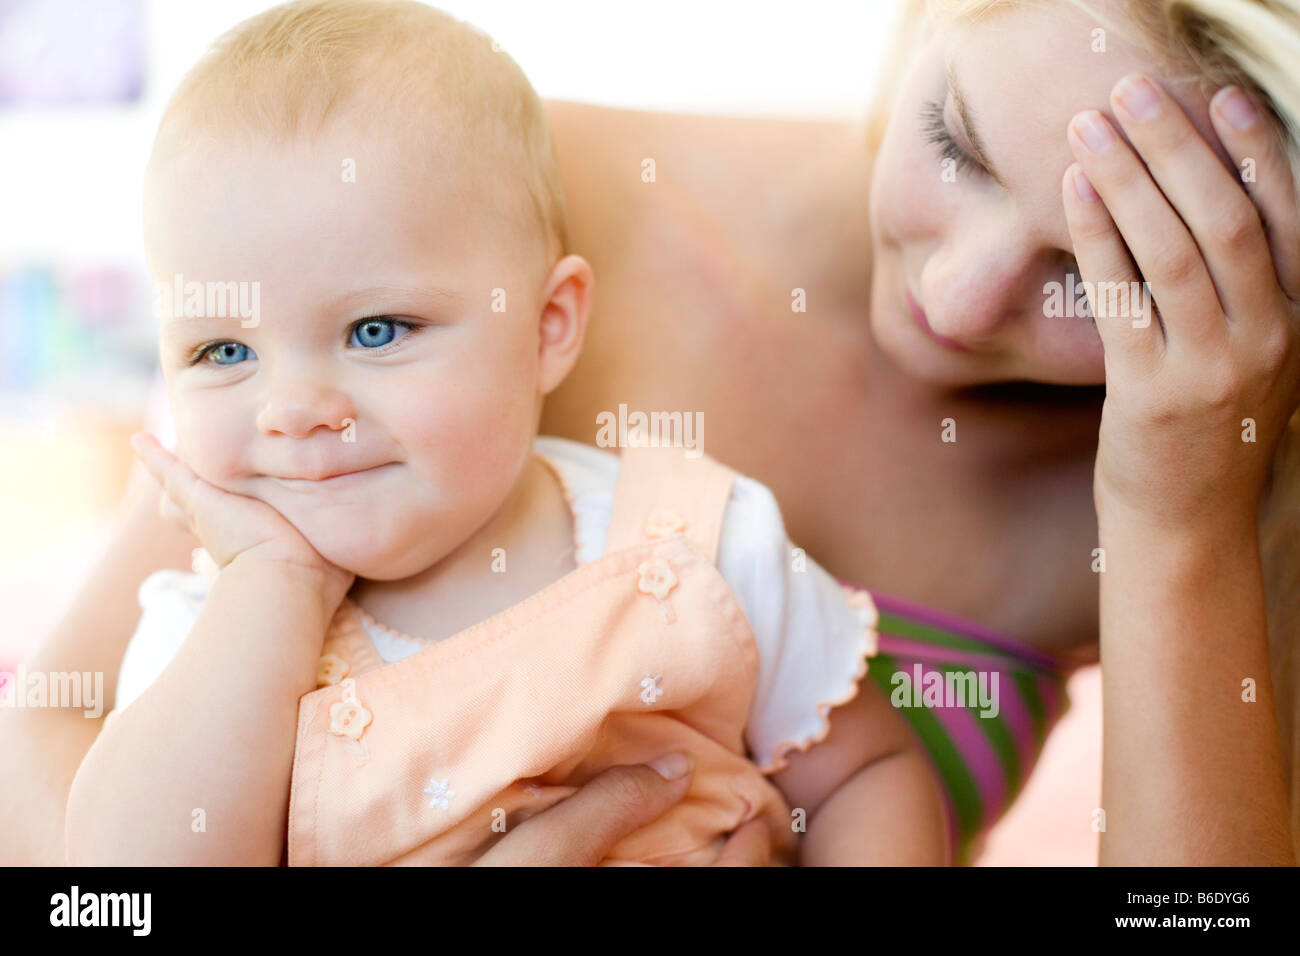 Teenage mother and baby. Stressed young mother holding her 10 month old daughter. Posed by models. Stock Photo